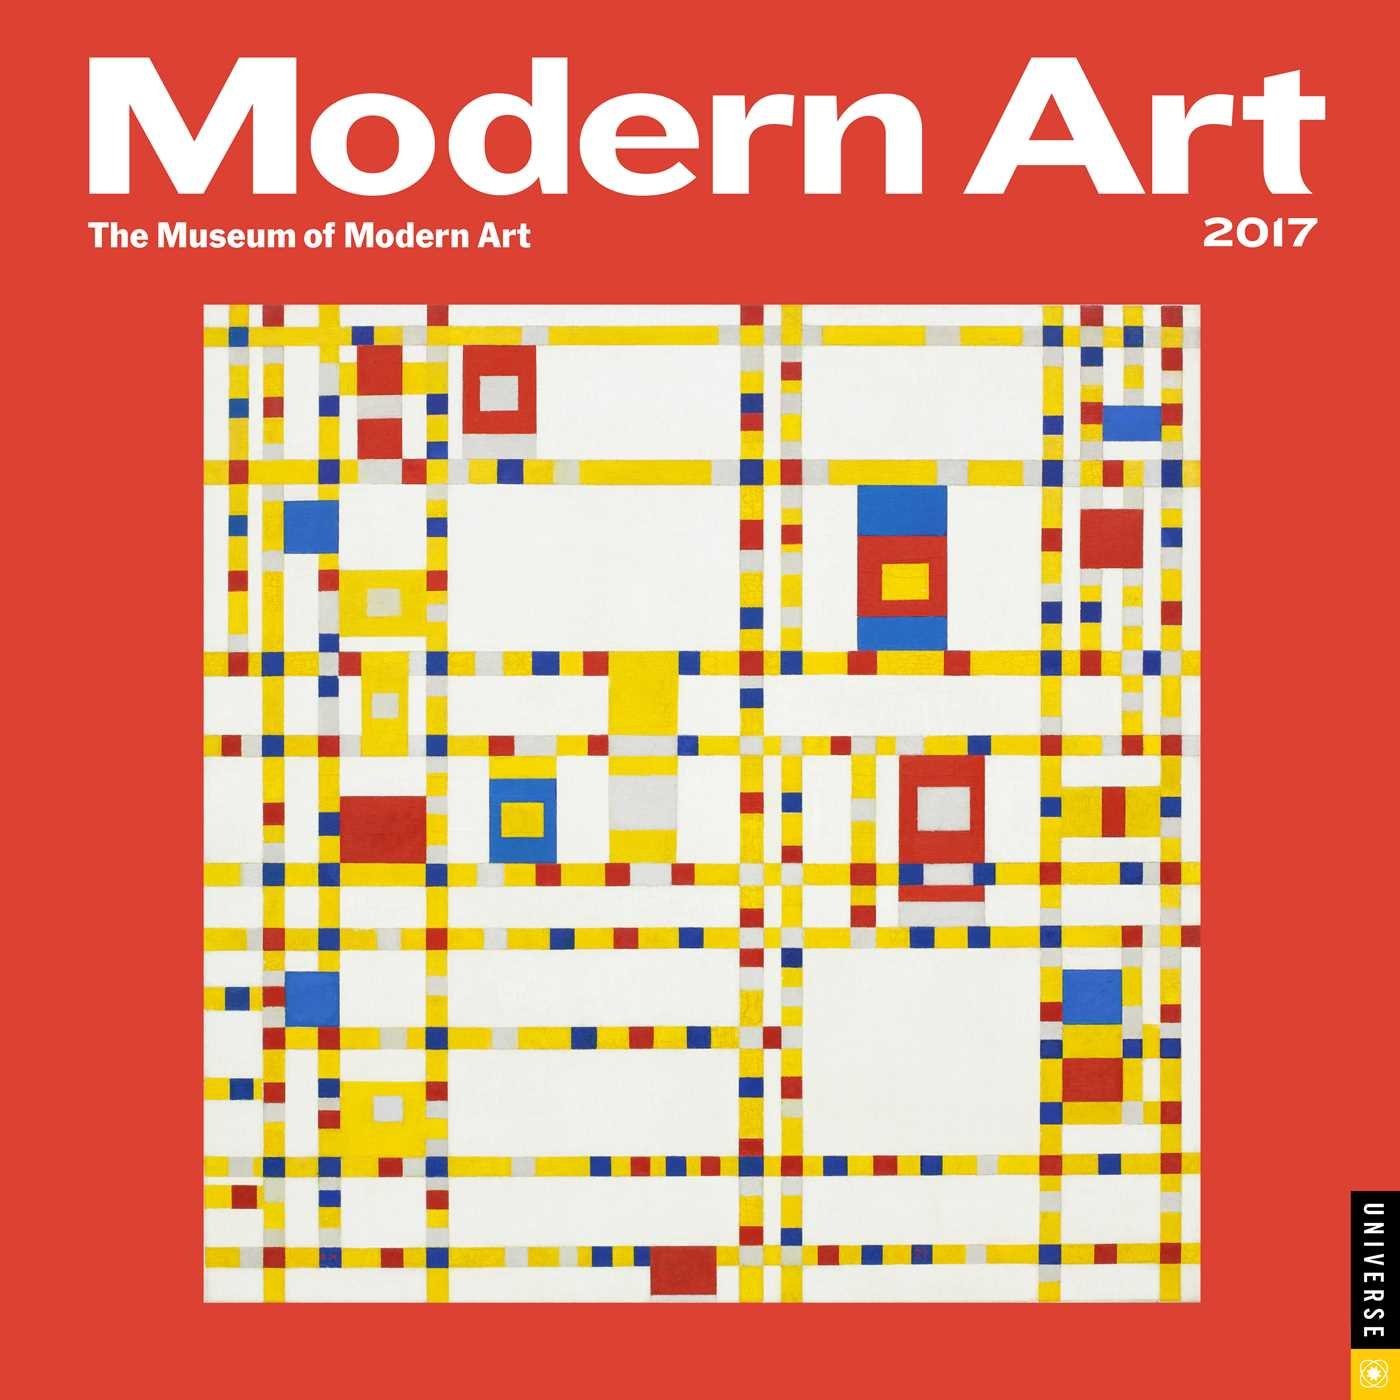 Modern Art 2017 Wall Calendar The Museum of Modern Art 9780789331861 Amazon.com Books  sc 1 st  Amazon.com & Modern Art 2017 Wall Calendar: The Museum of Modern Art ...